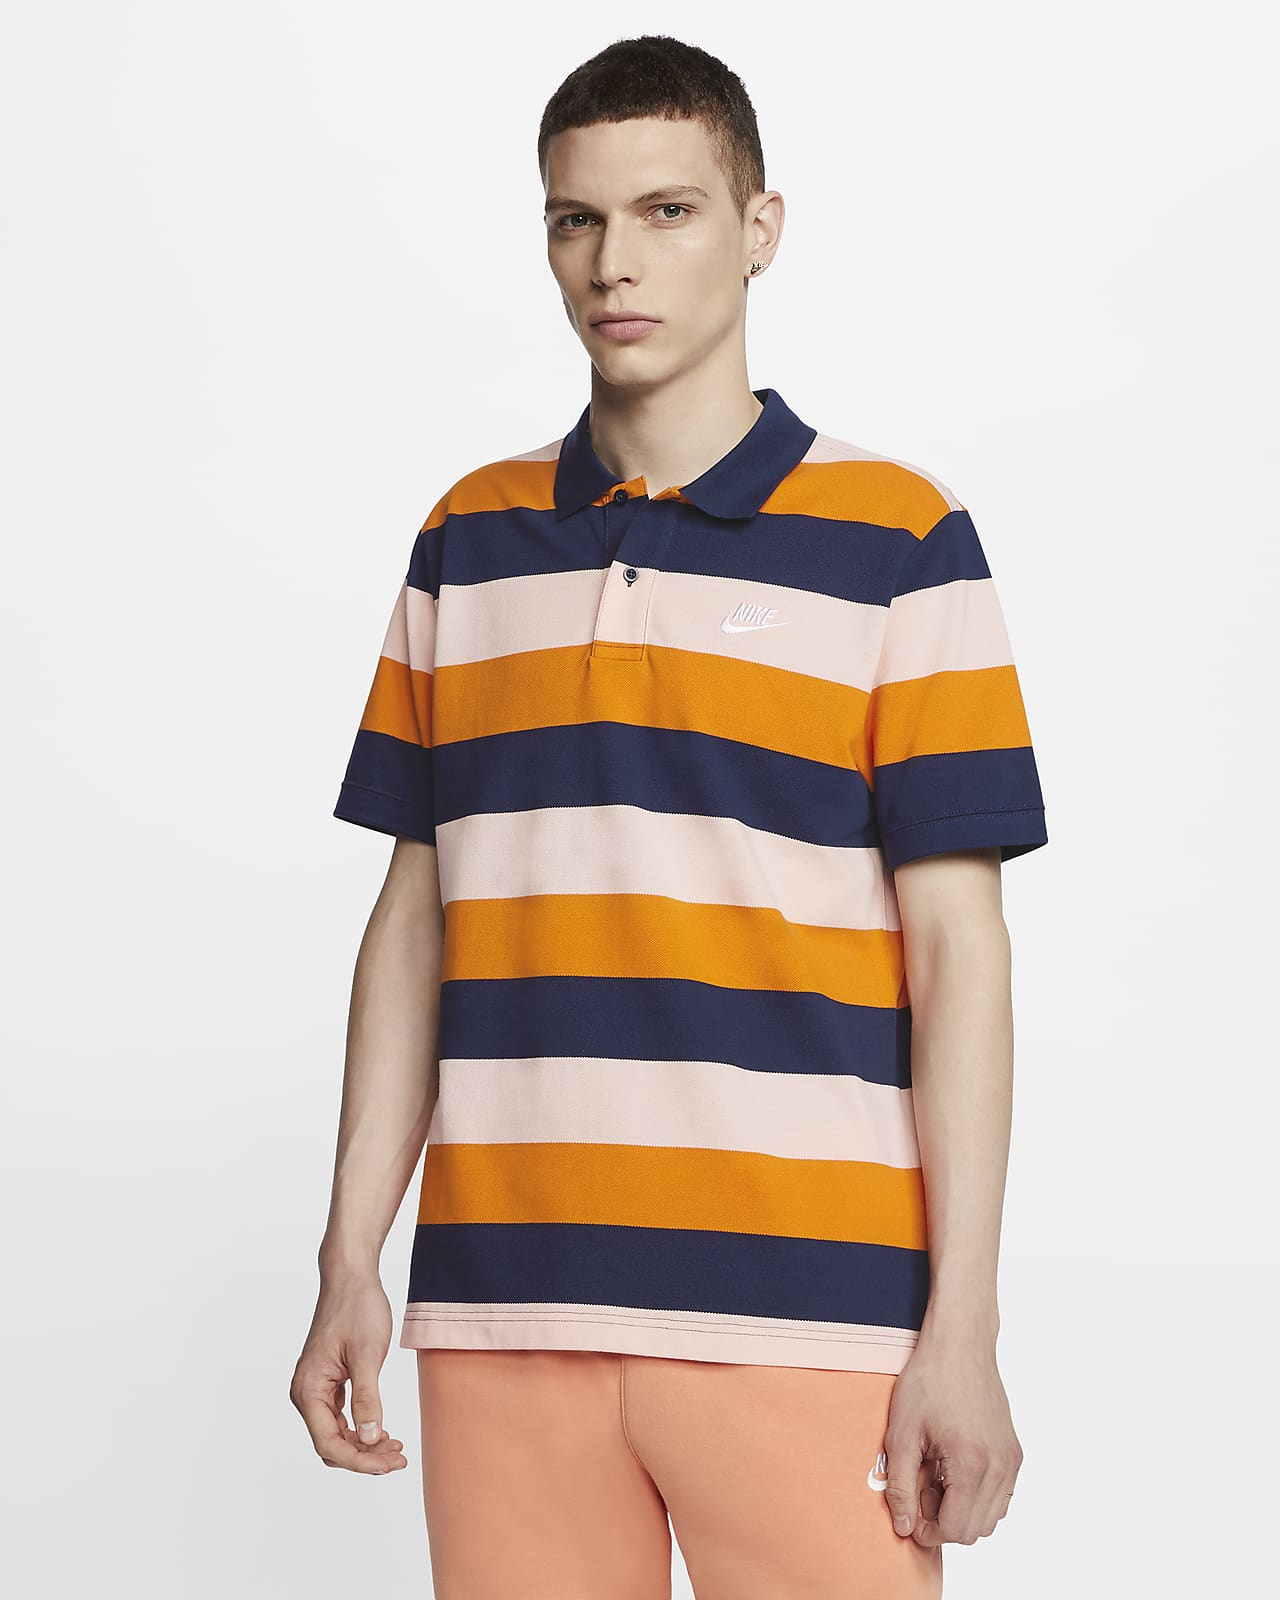 Nike Sportswear Men's Striped Polo